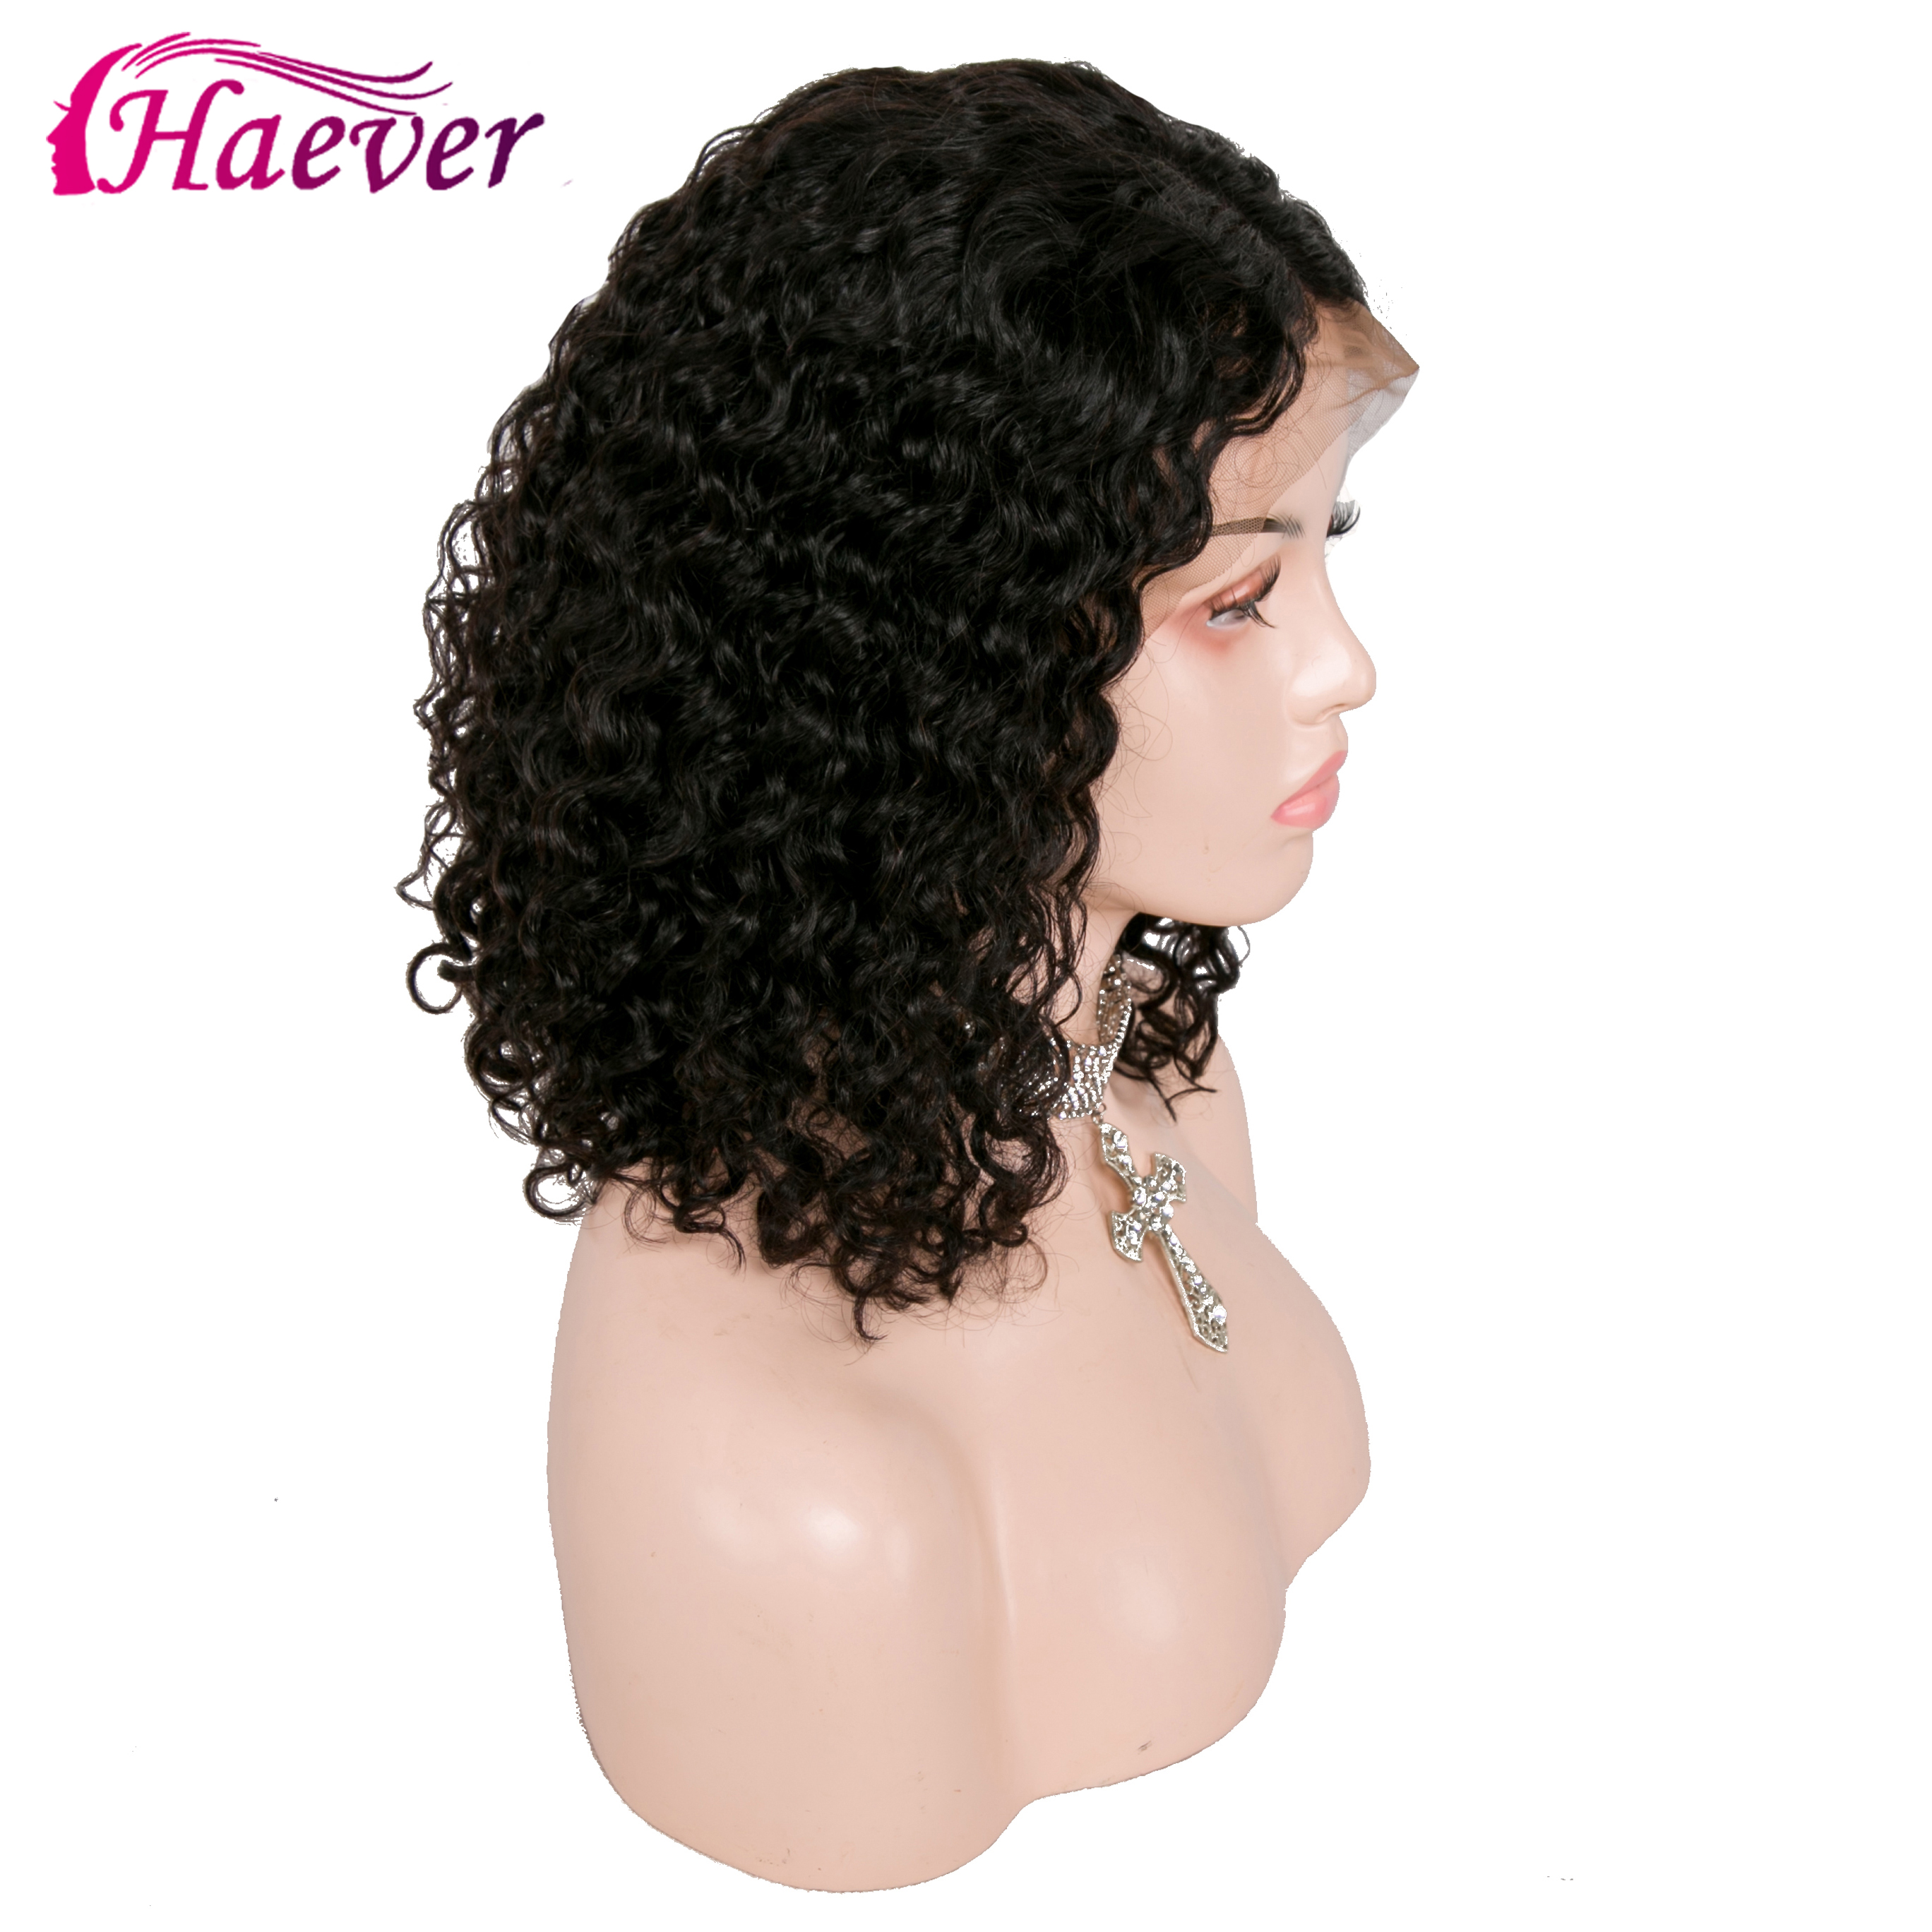 Haever 13x4 Human Hair Bob Wigs For Women Natural Black New Hair Brazilian Remy Kinky Curly Wave Lace Frontal Wig Pluck Bleached